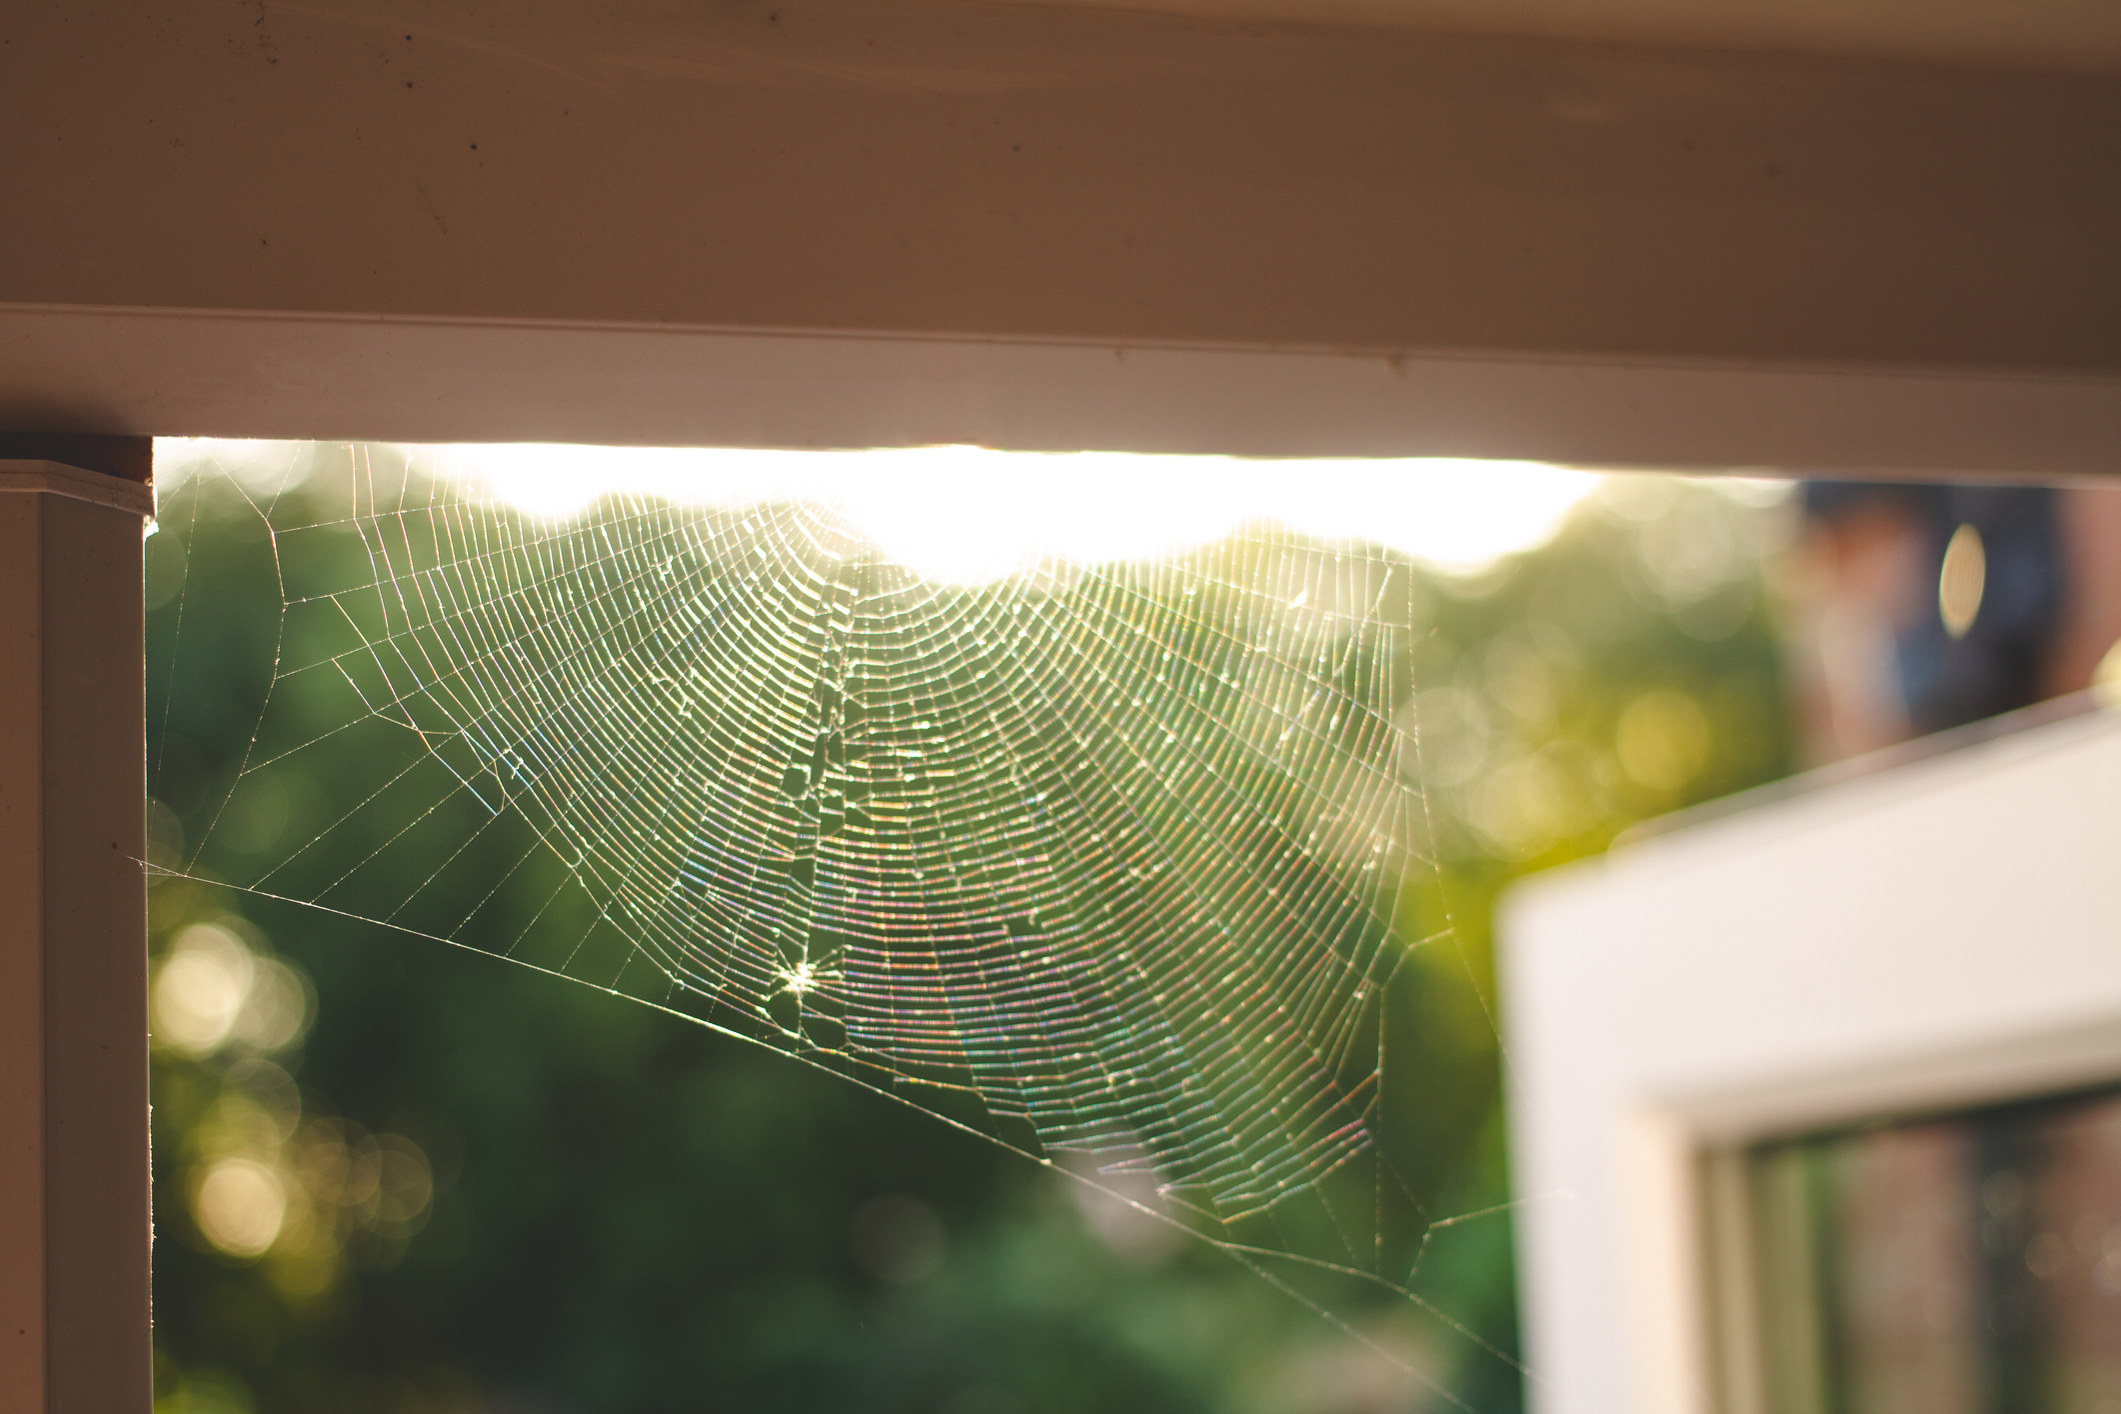 A cobweb in the door frame of a home in the UK during summer